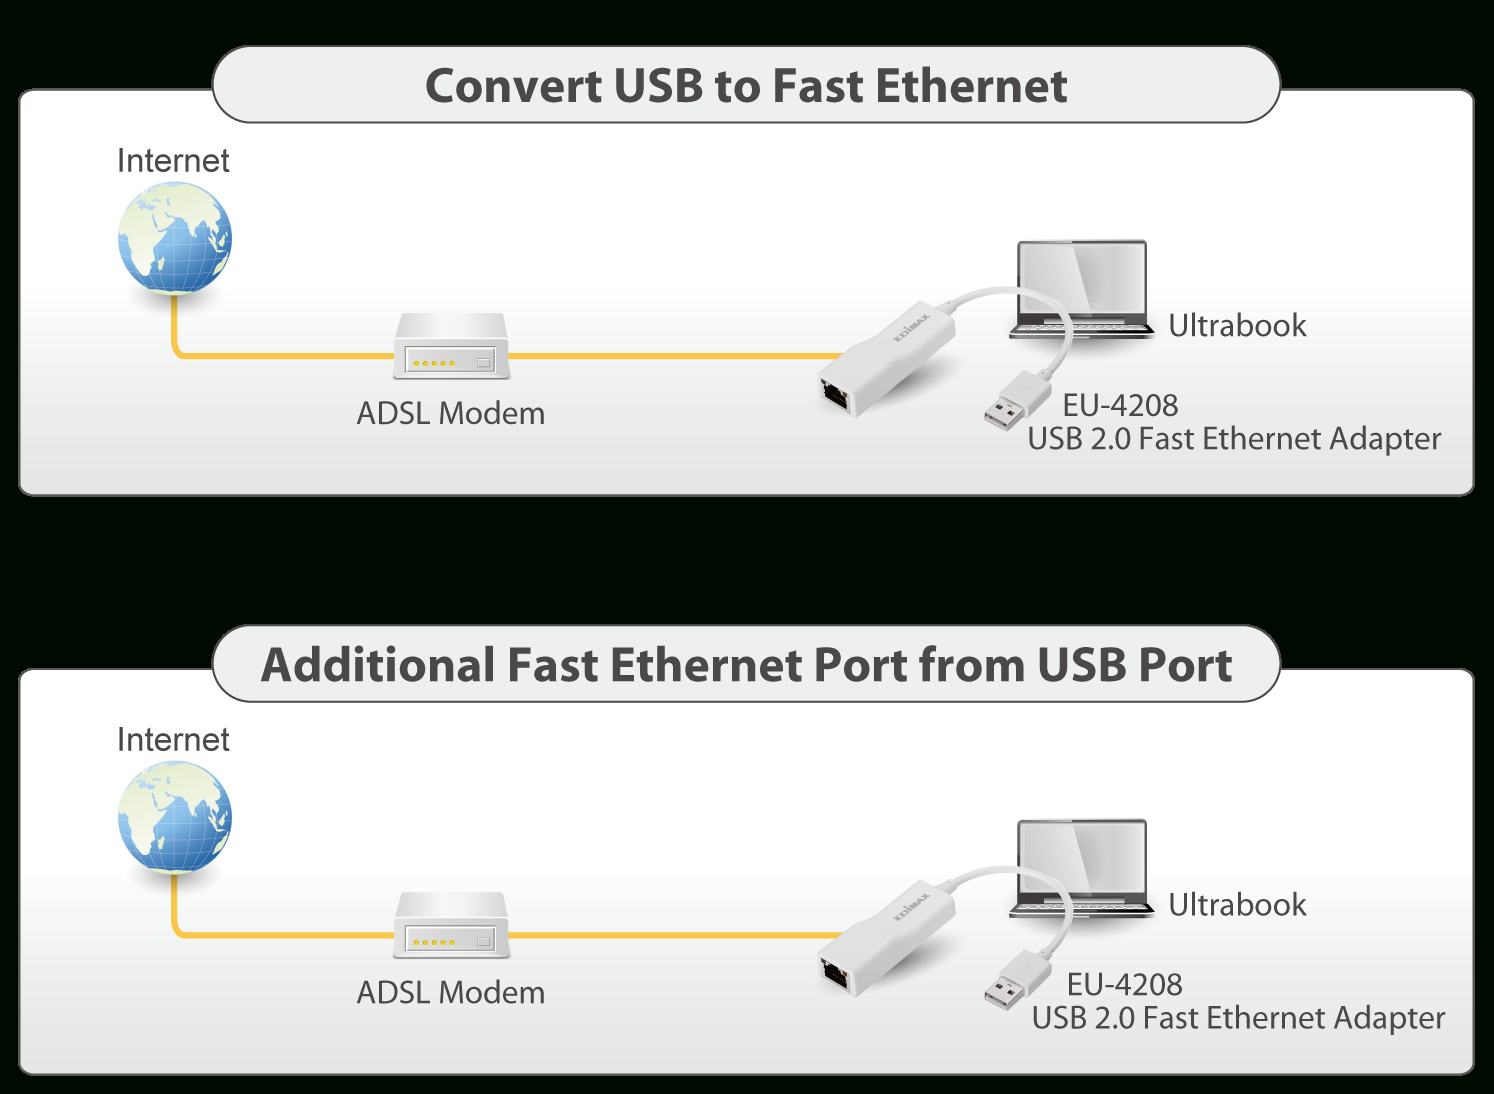 Usb 2.0 Fast Ethernet Adapter | Edimax - Edimax - How To Hookup Ethernet To Usb Wiring Diagram